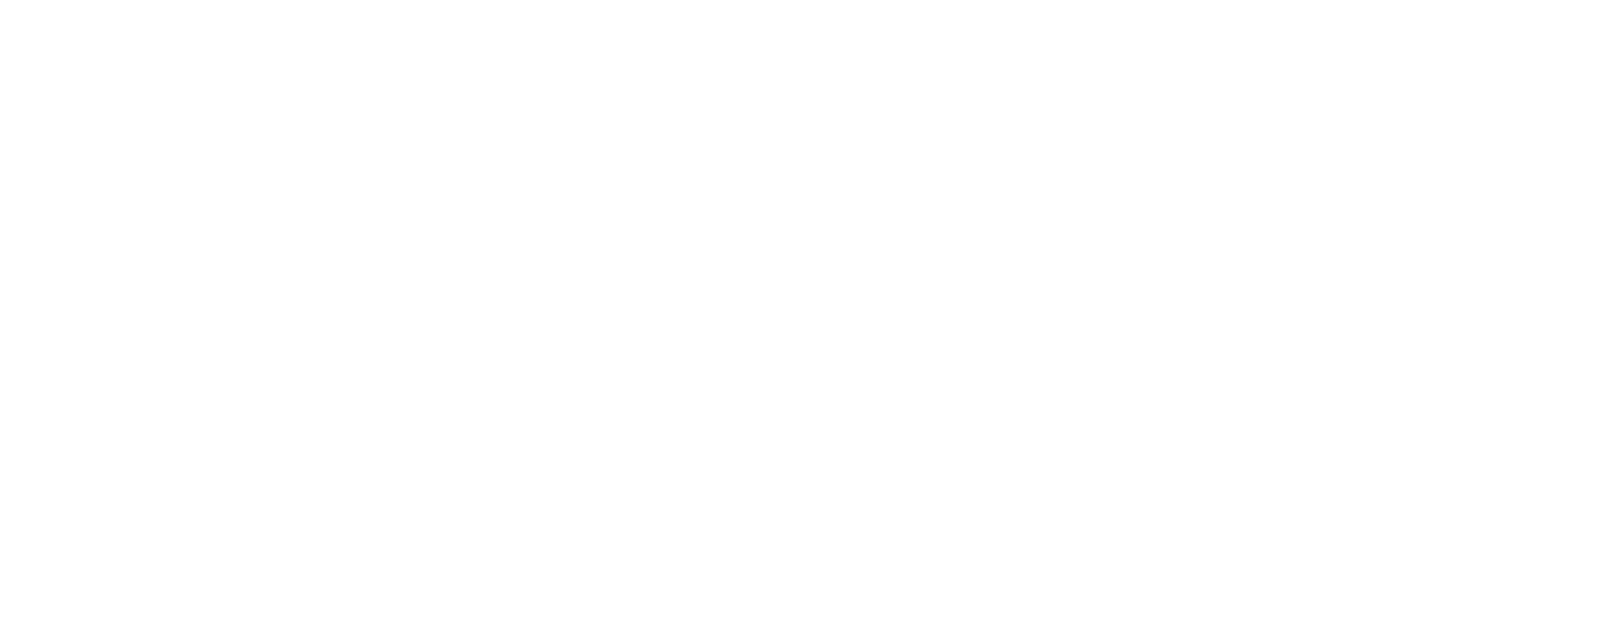 Line illustrations to convey the dimensions of the Aeron Chair. Size B, medium, has a total height of 36.75 – 43.25